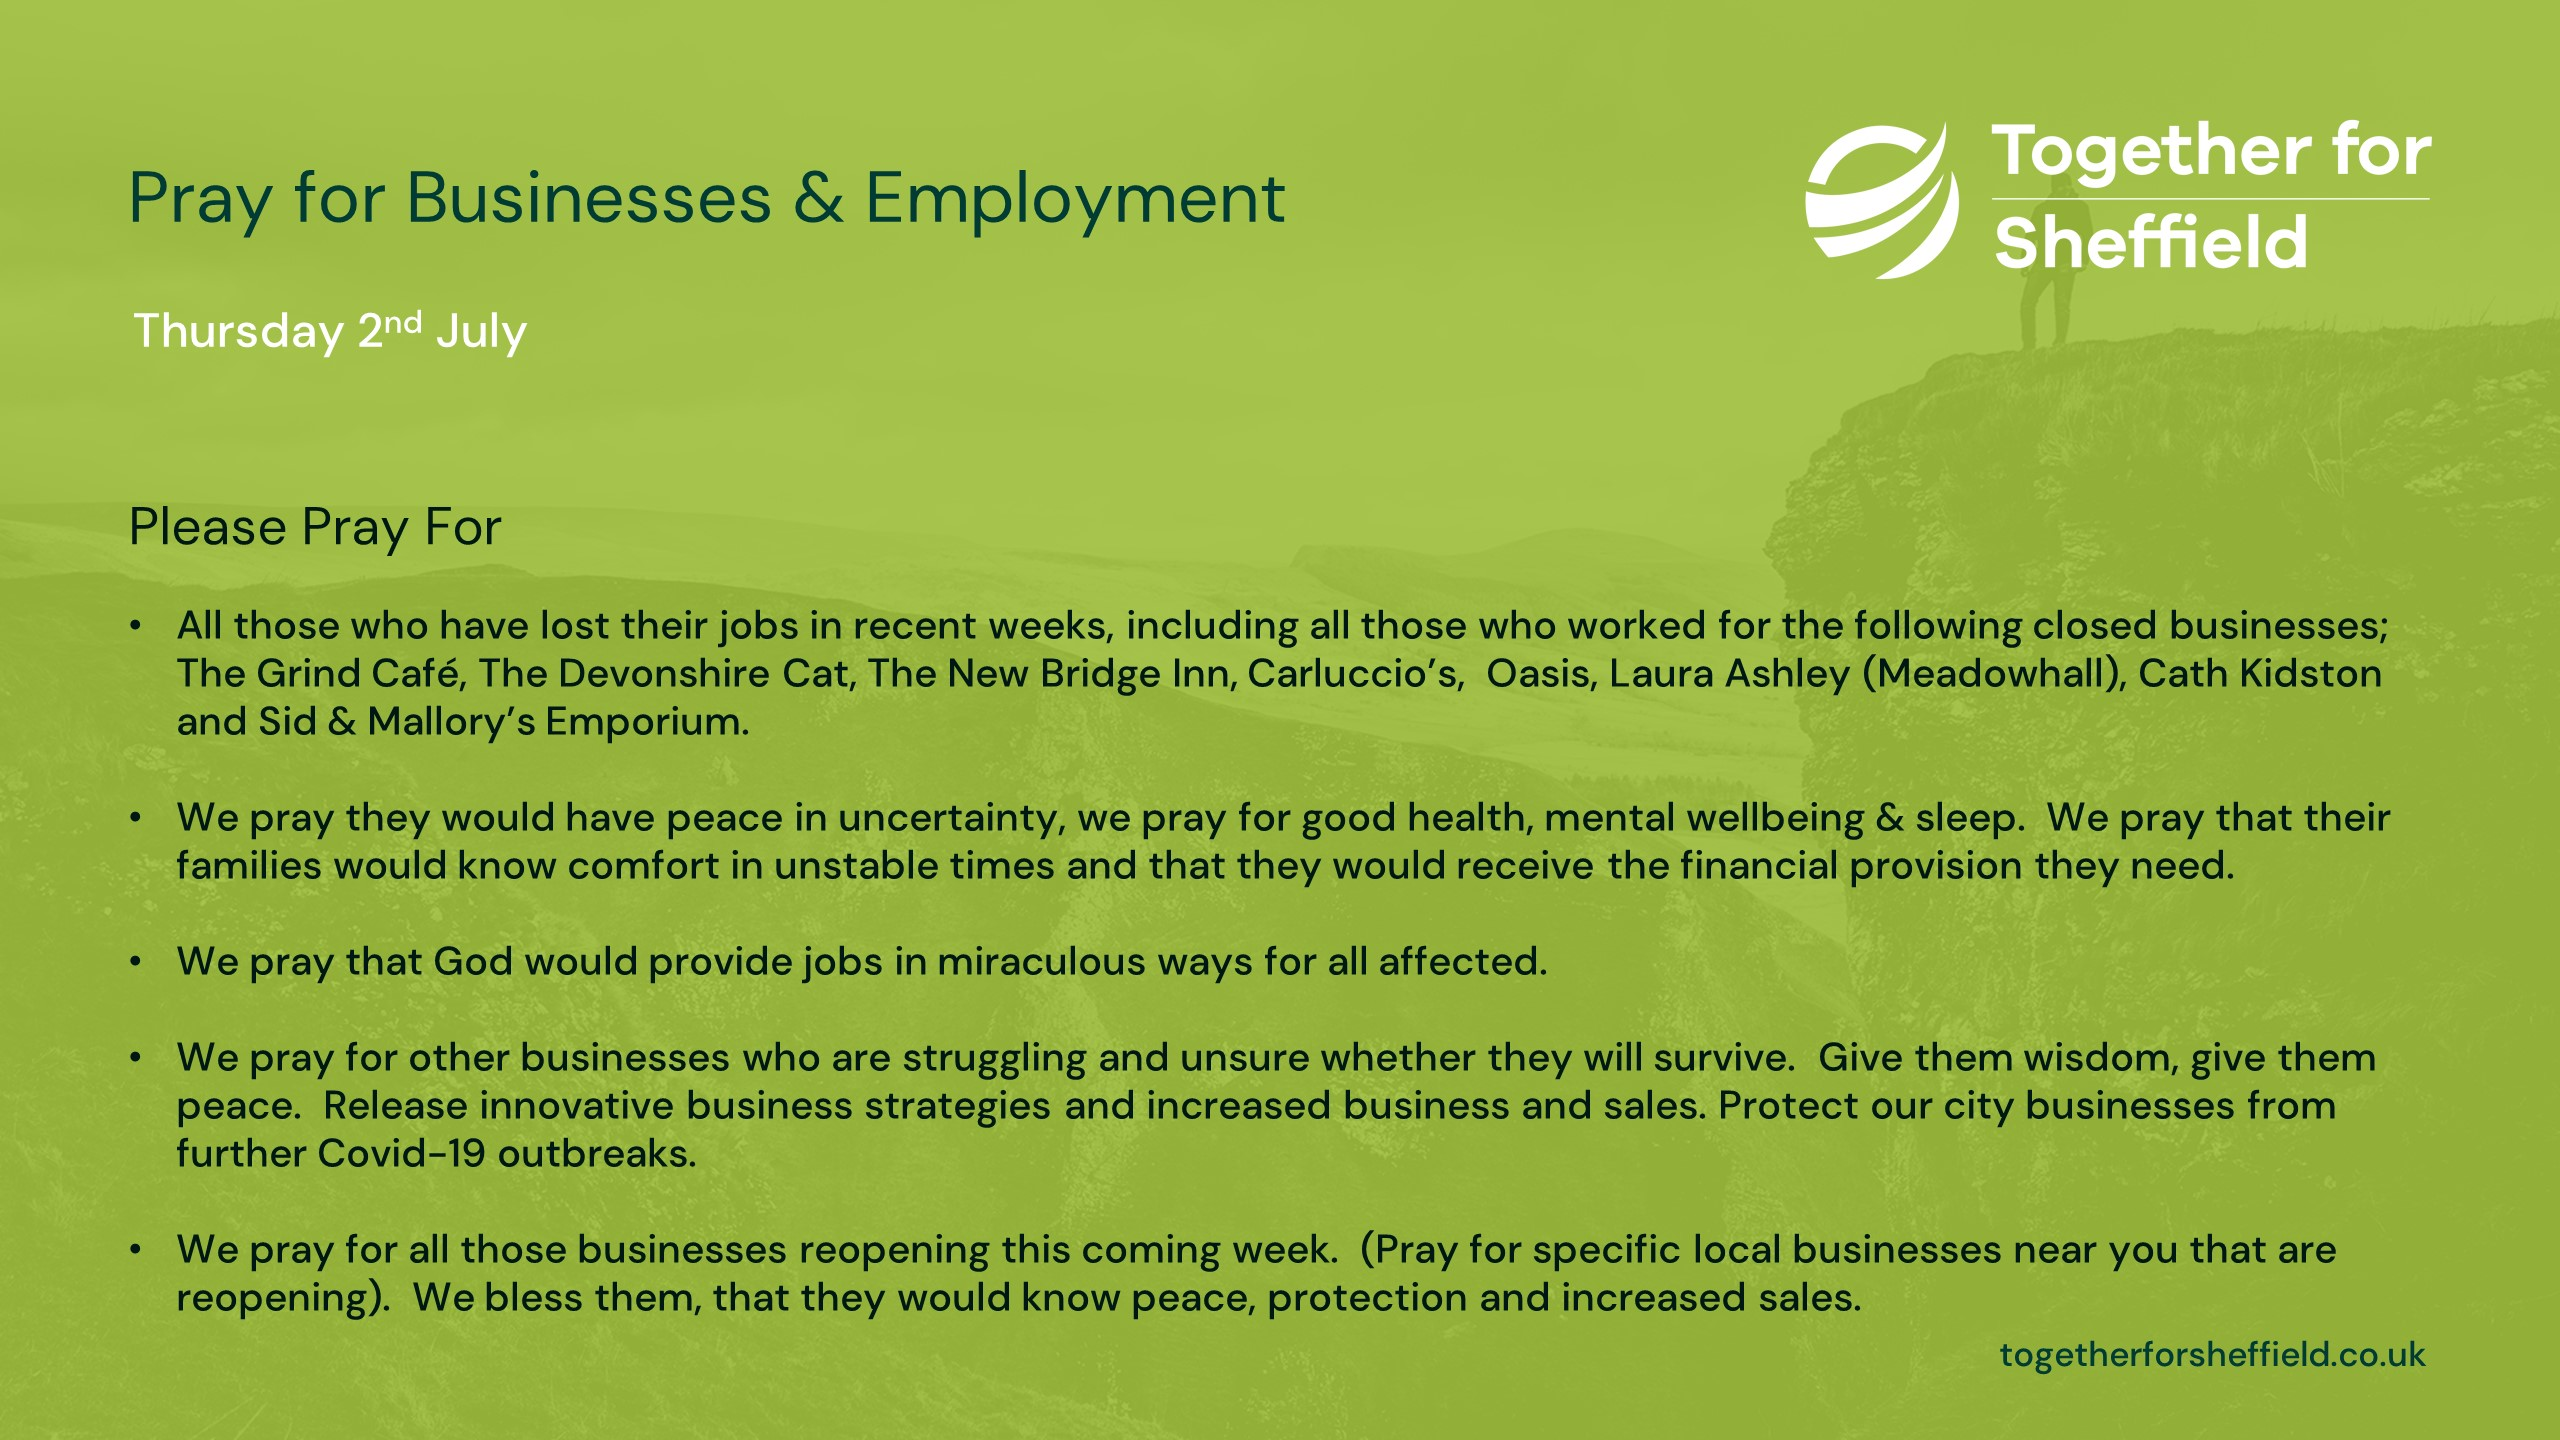 1st July - Business & Employment